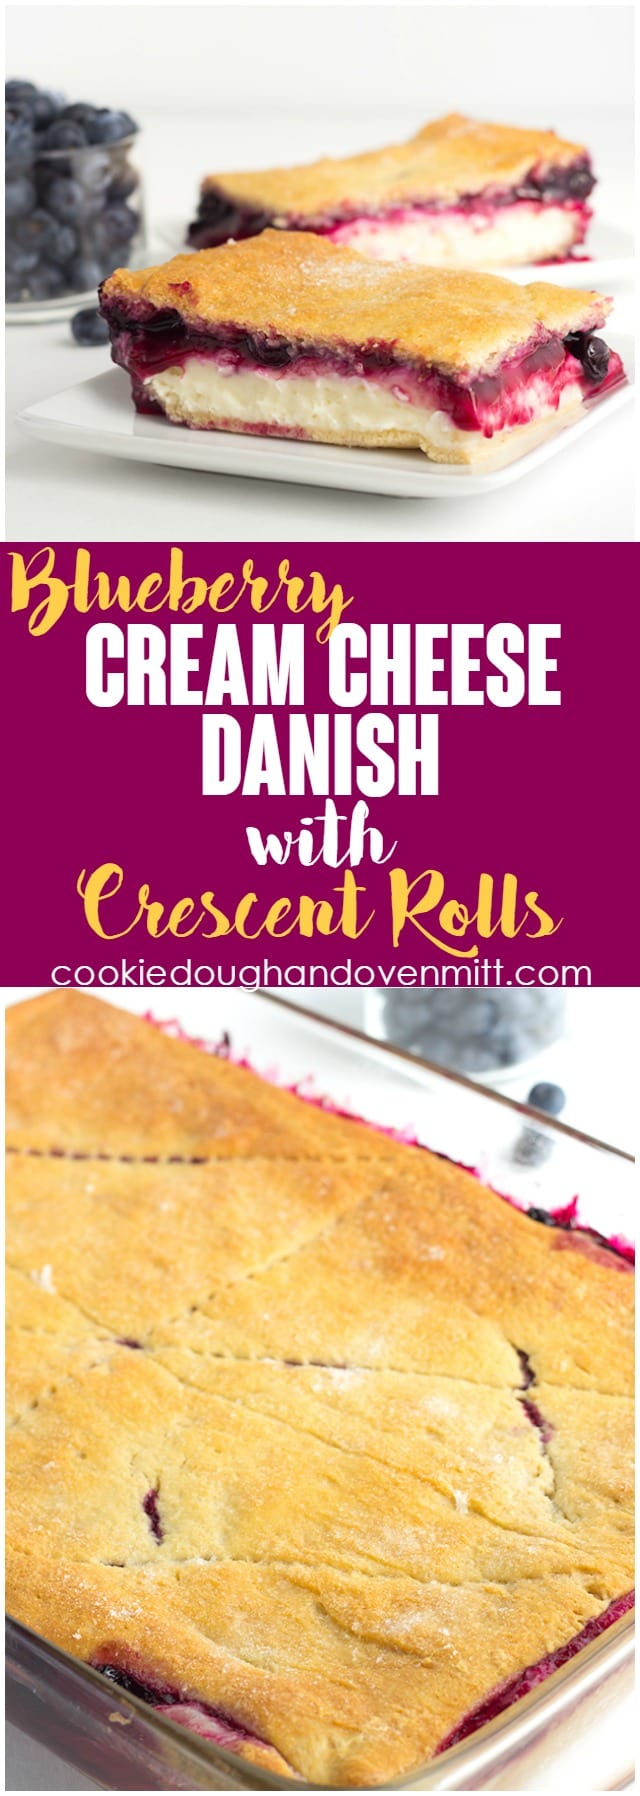 Easy Crescent Roll Coffee Cake